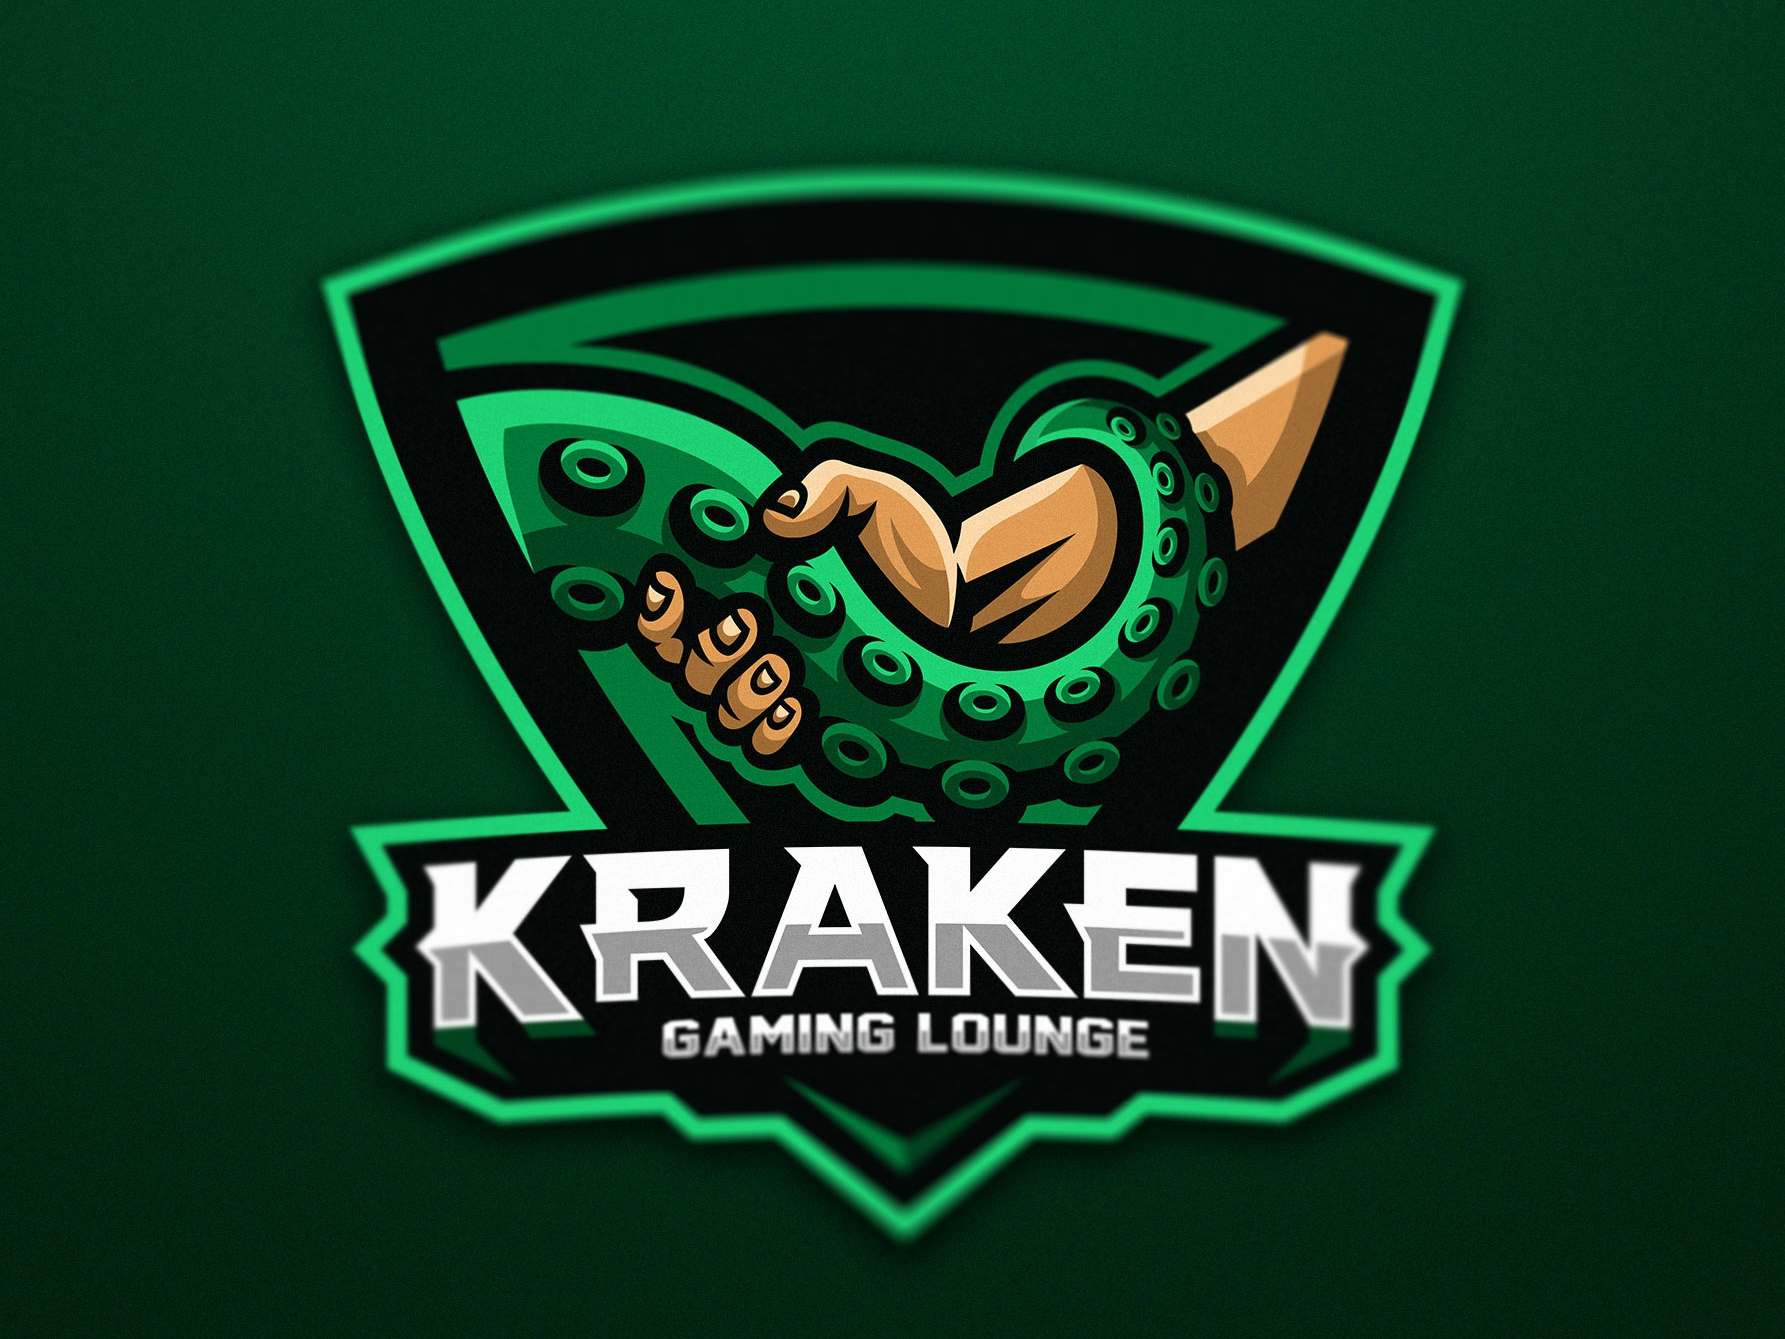 tentacle shaking hand with a human gaming lounge logo